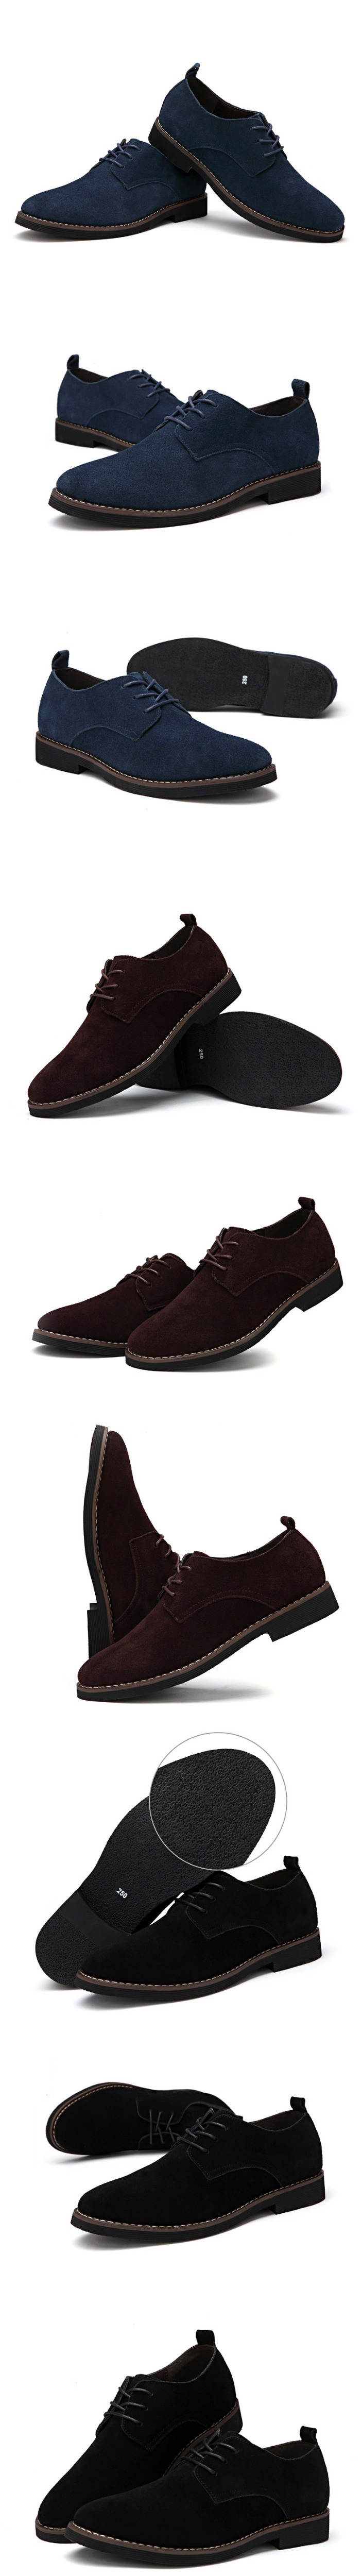 HTB1HjJOgSCWBuNjy0Fhq6z6EVXaX - Suede Leather Oxford Men's Casual Shoes-Suede Leather Oxford Men's Casual Shoes